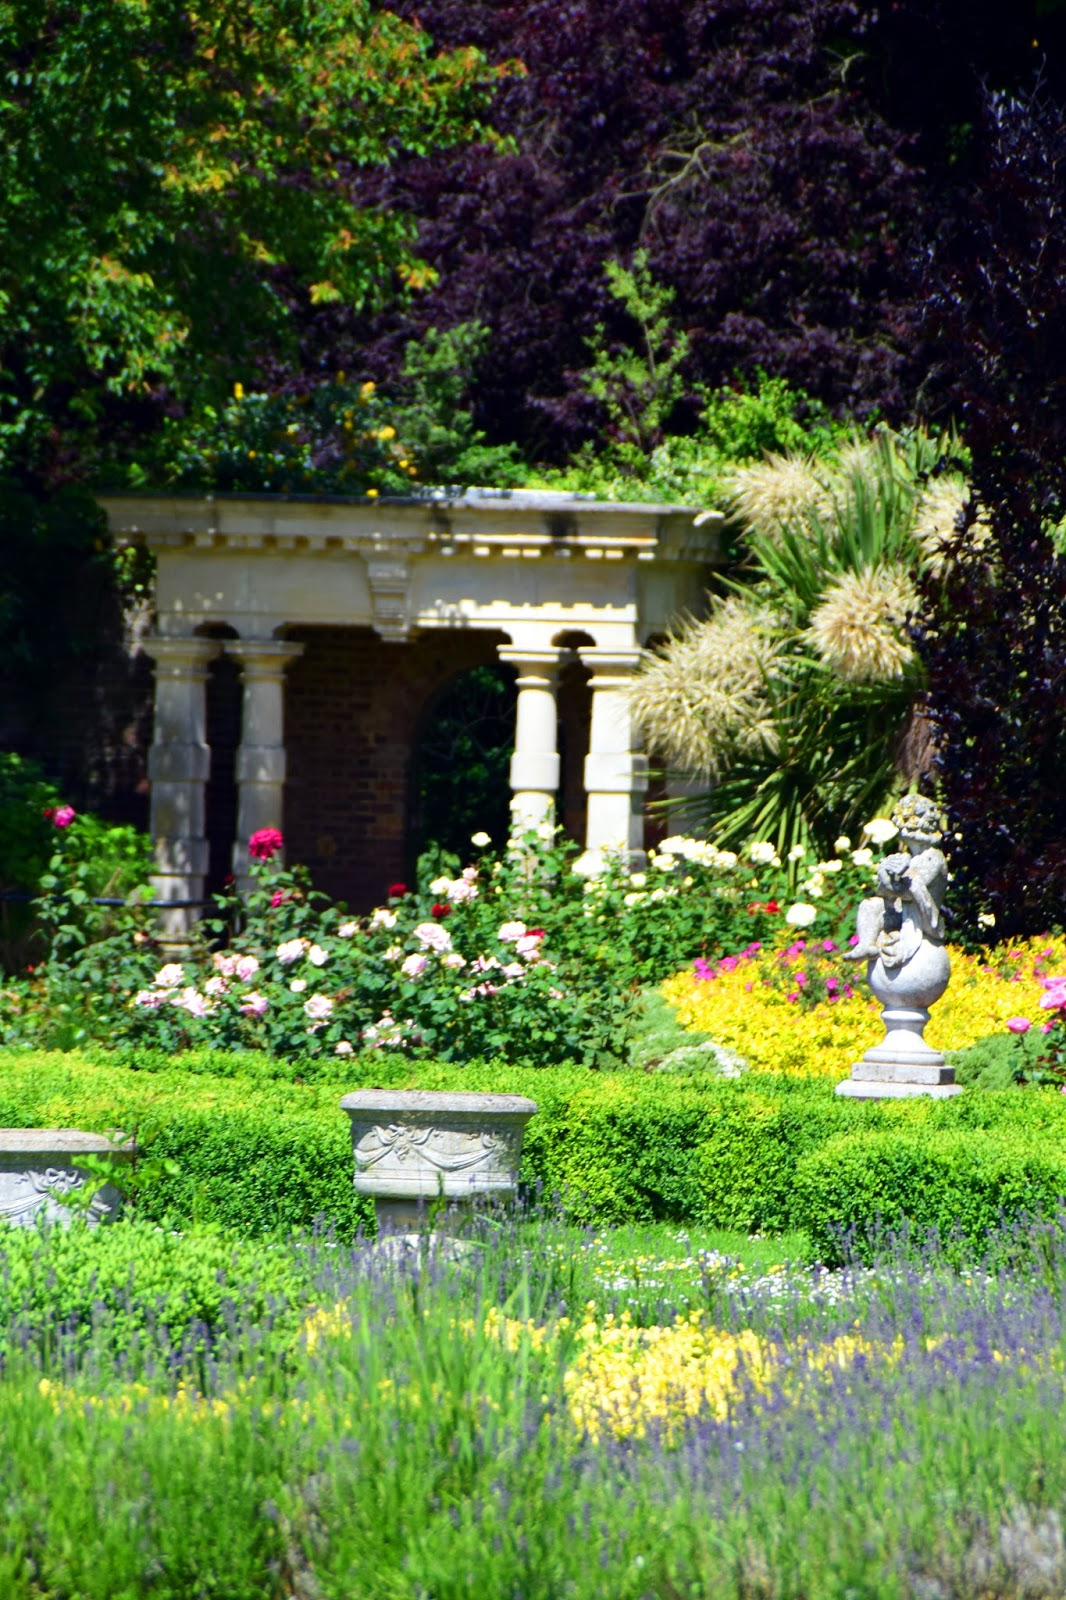 Enjoy your time with beautiful places: Sunbury Walled Garden